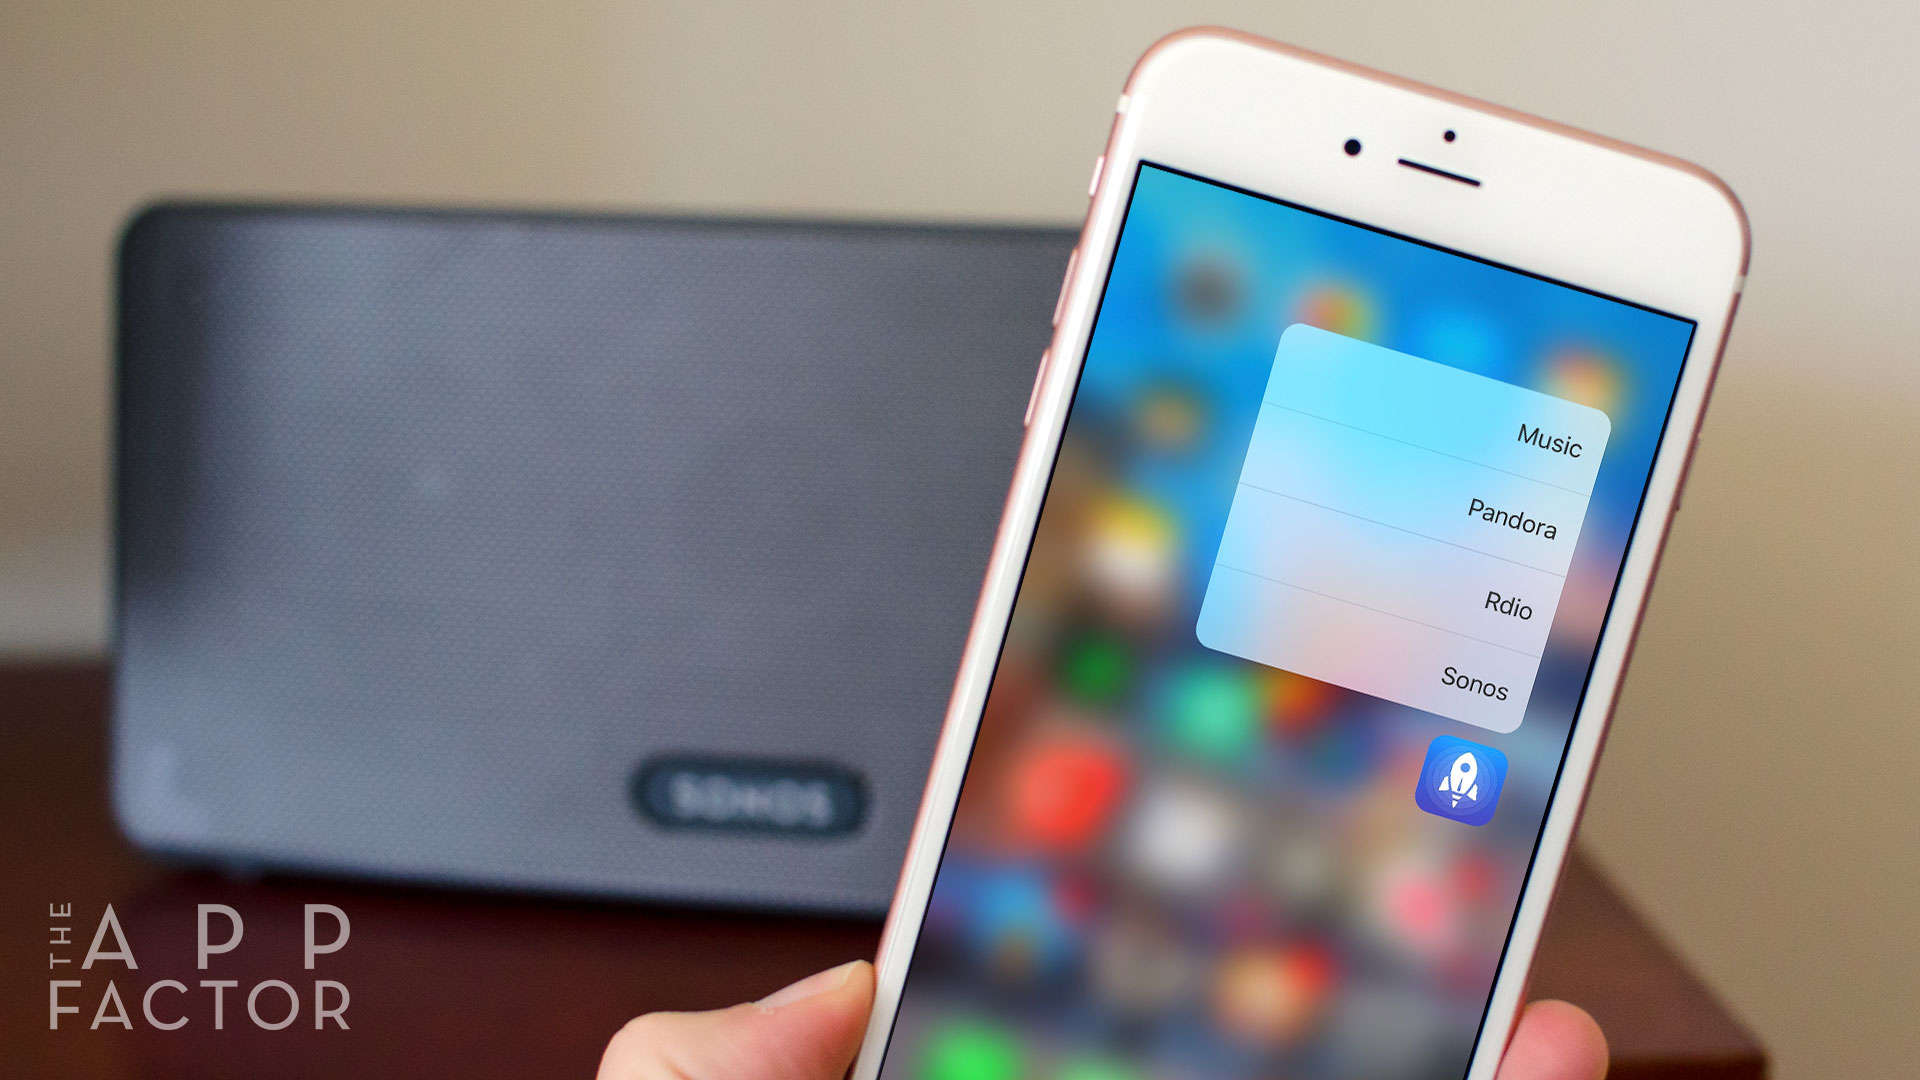 Want faster access to home audio? Here's how with the help of Launch Center Pro and 3D Touch!